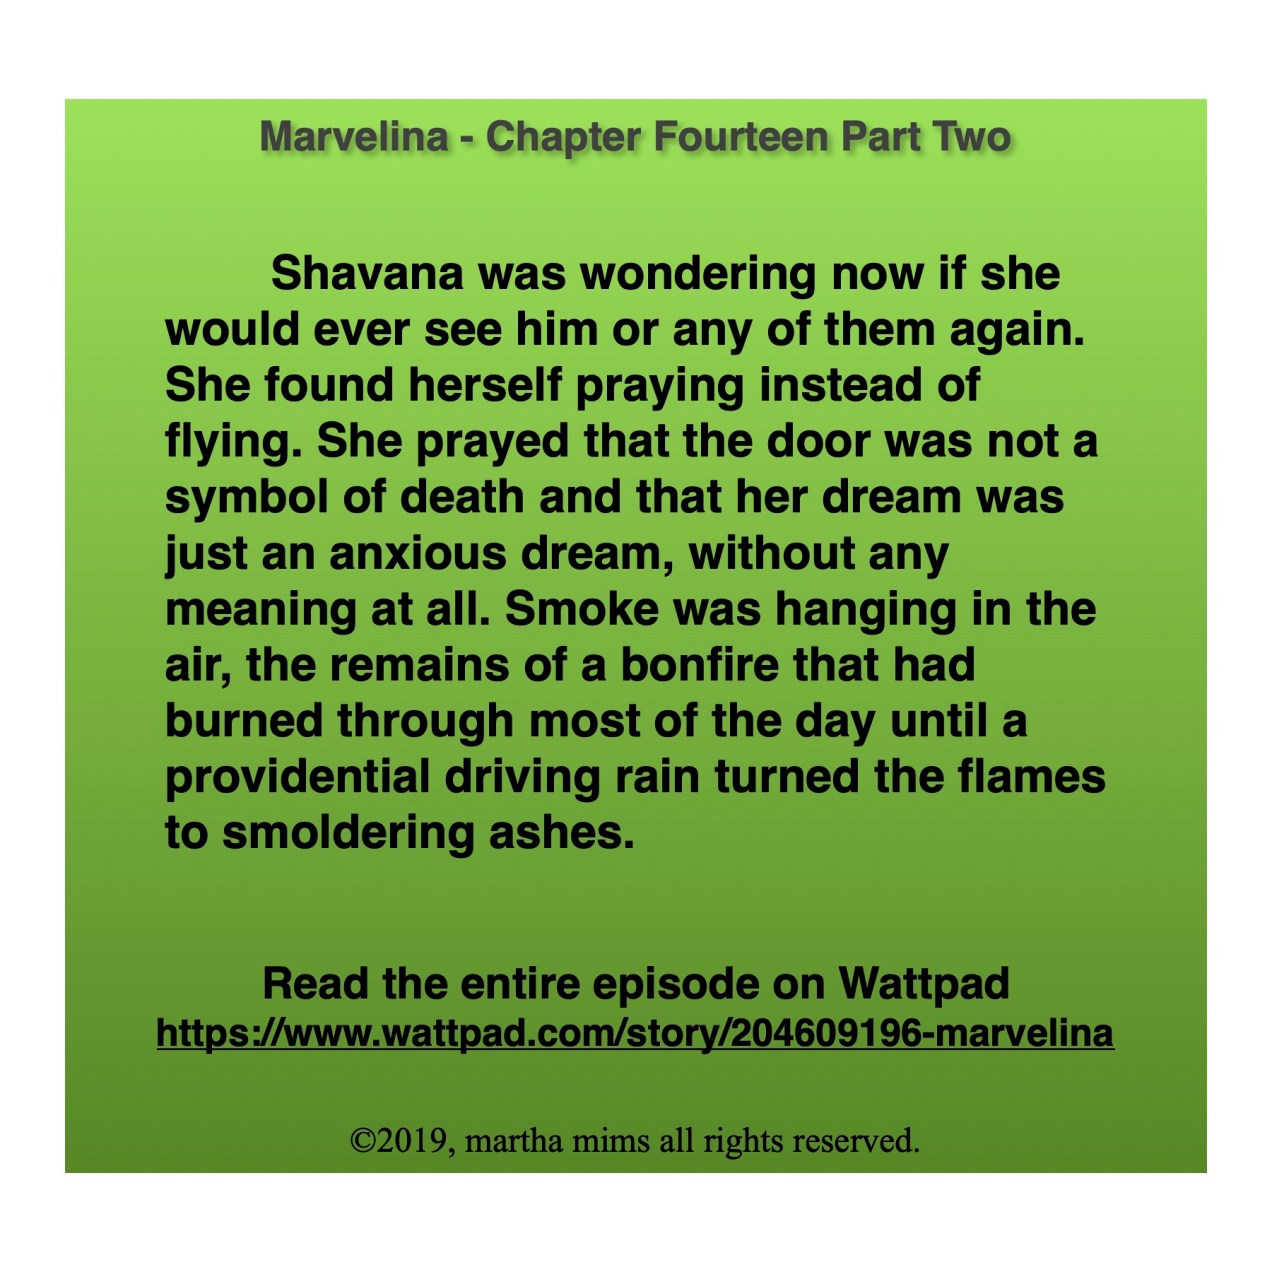 Shavana was wondering now if she would ever see him or any of them again. She found herself praying instead of flying. She prayed that the door was not a symbol of death and that her dream was just an anxious dream, without any meaning at all. Smoke was hanging in the air, the remains of a bonfire that had burned through most of the day until a providential driving rain turned the flames to smoldering ashes.